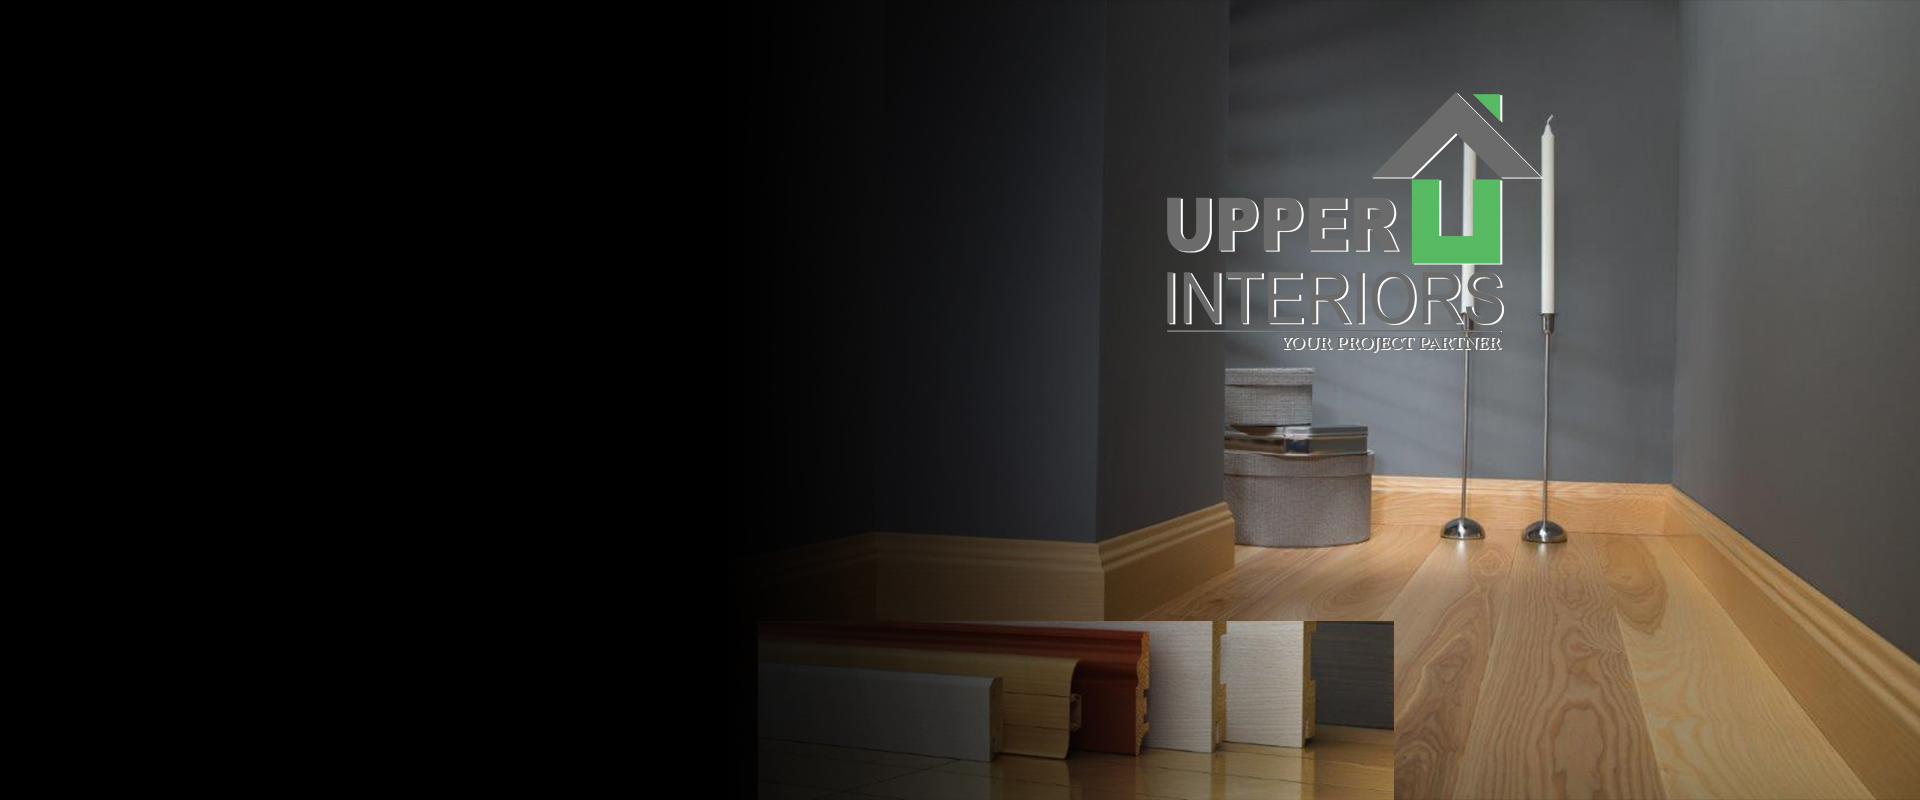 Upper Interiors SD - Your Project Partner